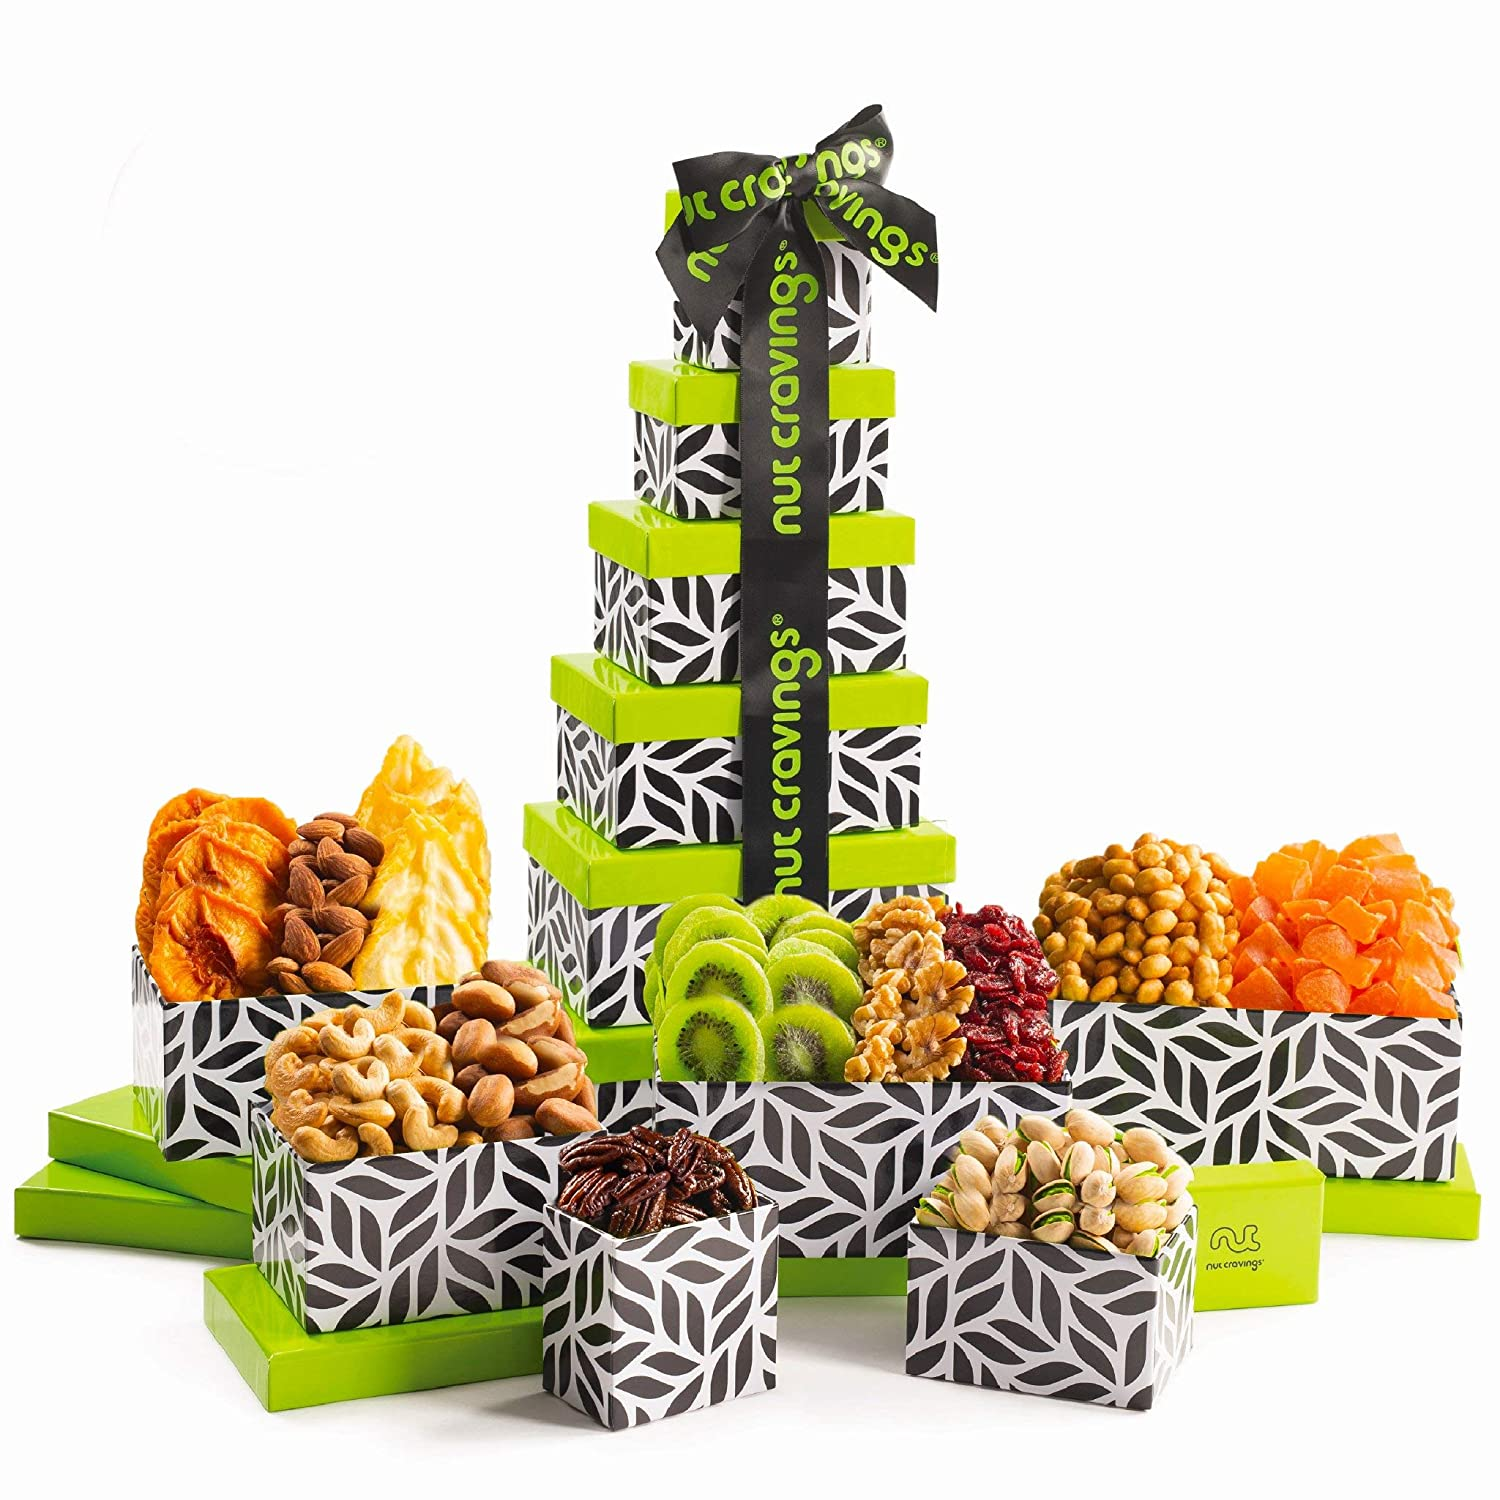 Gourmet Dried Fruit & Nut Gift Basket, Leaf Tower (12 Mix) - Easter Food Arrangement Platter, Care Package Variety, Prime Birthday Assortment, Healthy Kosher Snack Box for Women, Men, Adults